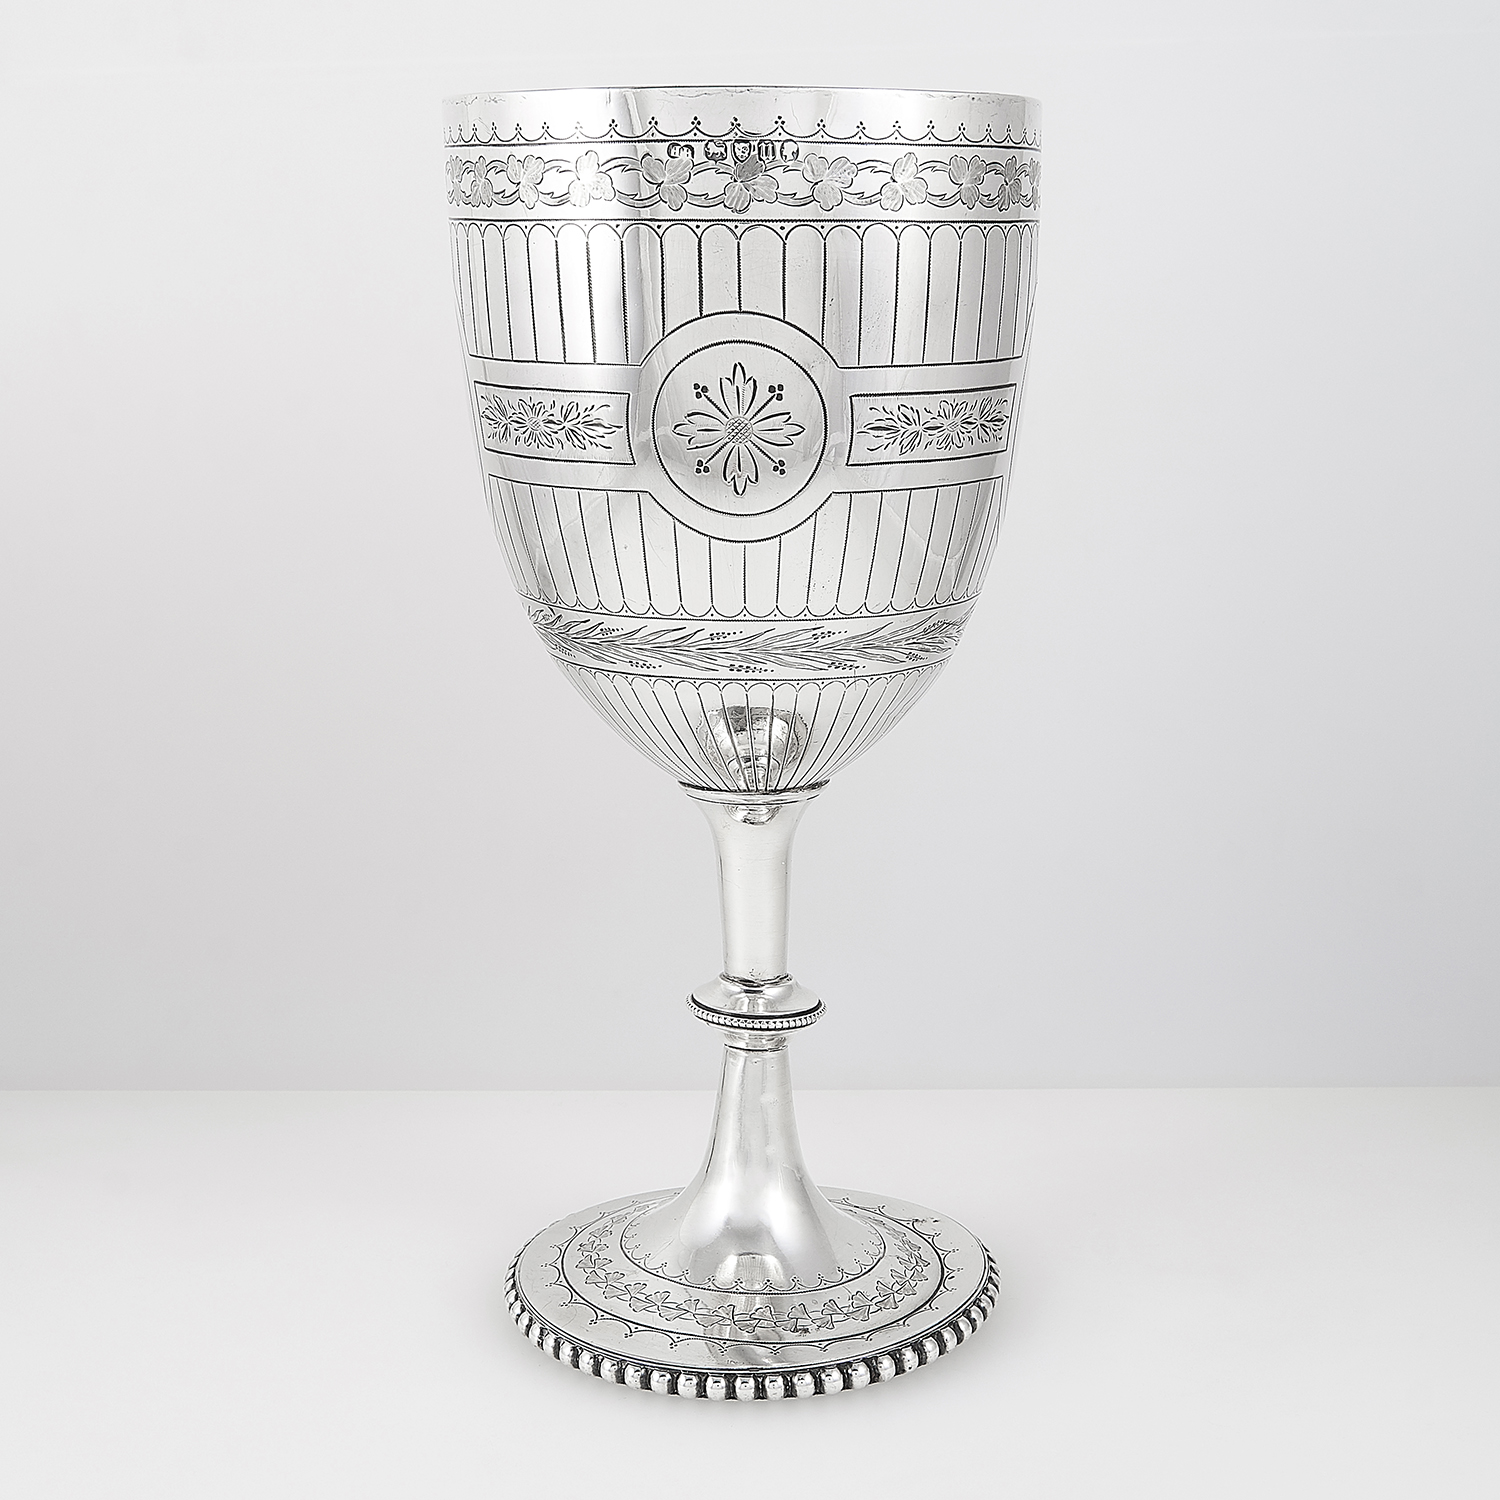 ANTIQUE VICTORIAN STERLING SILVER GOBLET, HENRY HOLLAND, LONDON 1875 the rounded body with